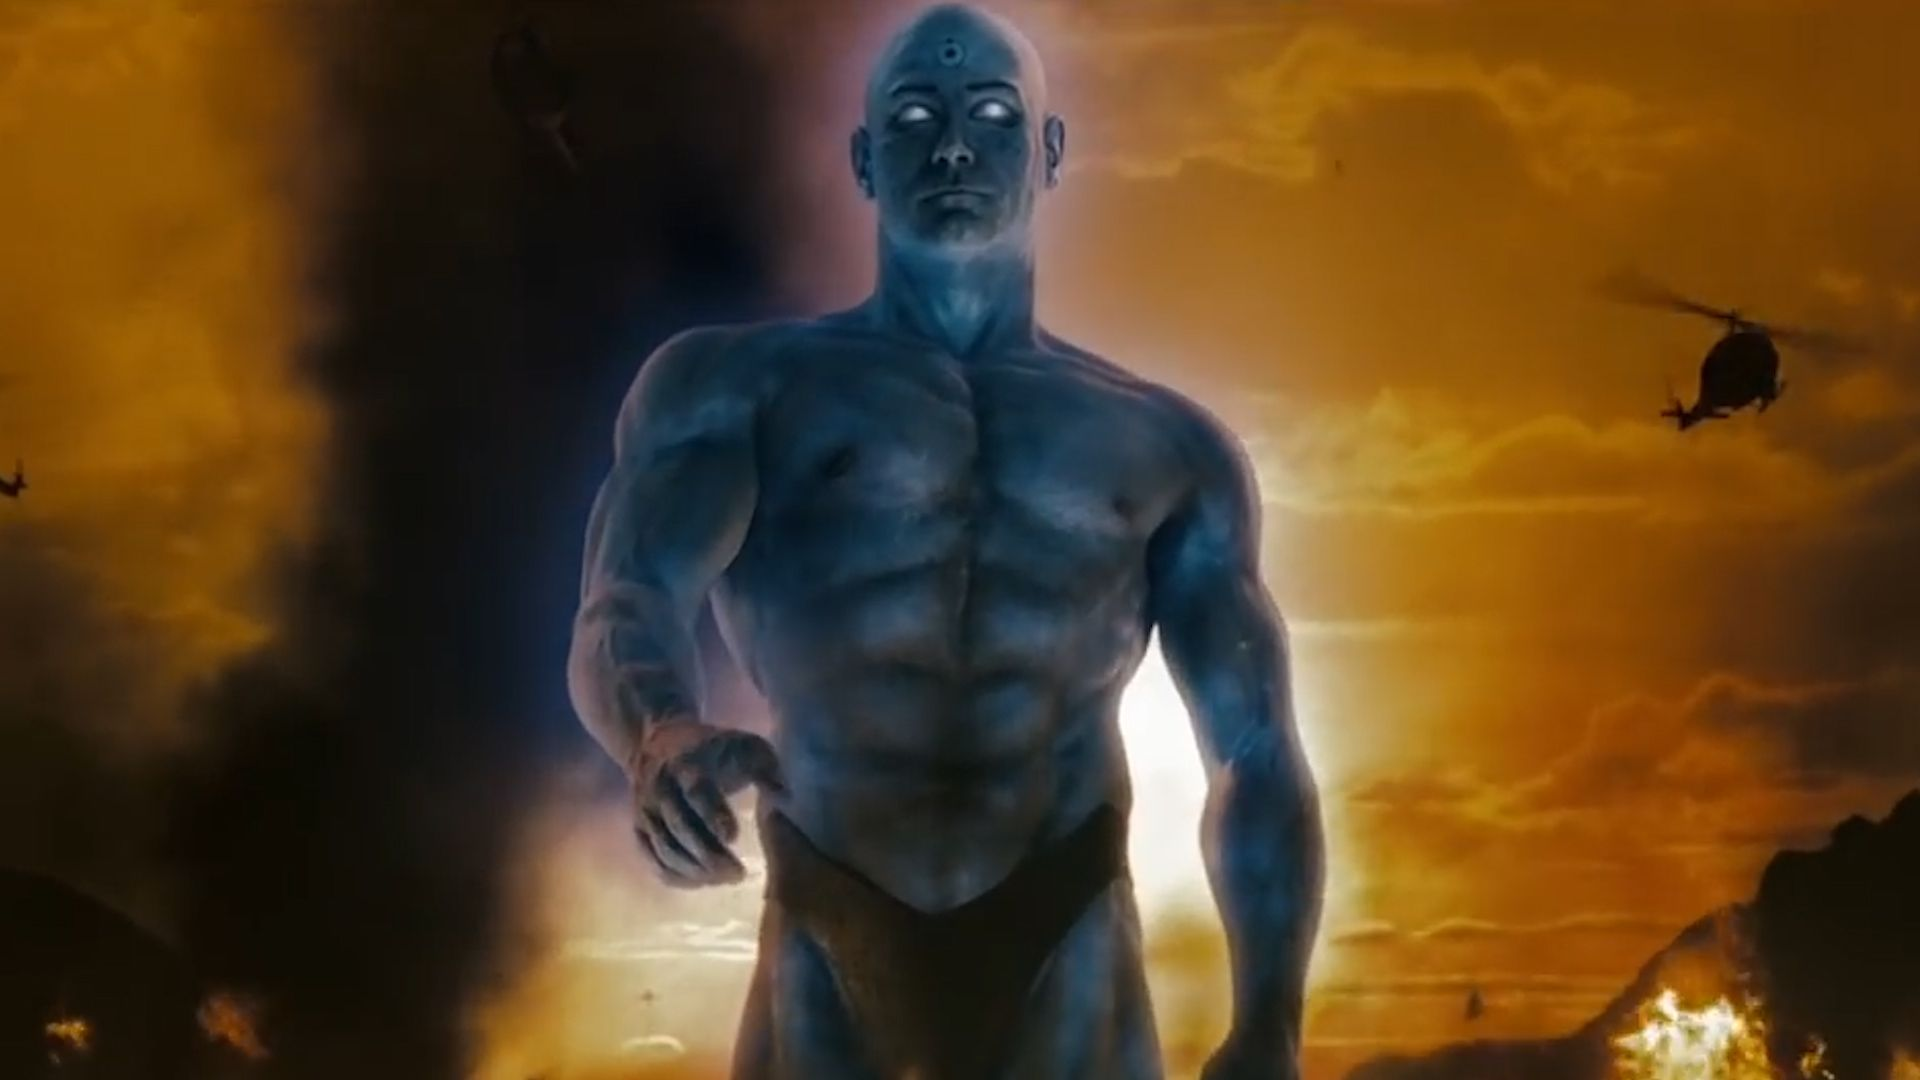 Watchmen Episode Four Began to Unravel the Mystery of Will Reeves